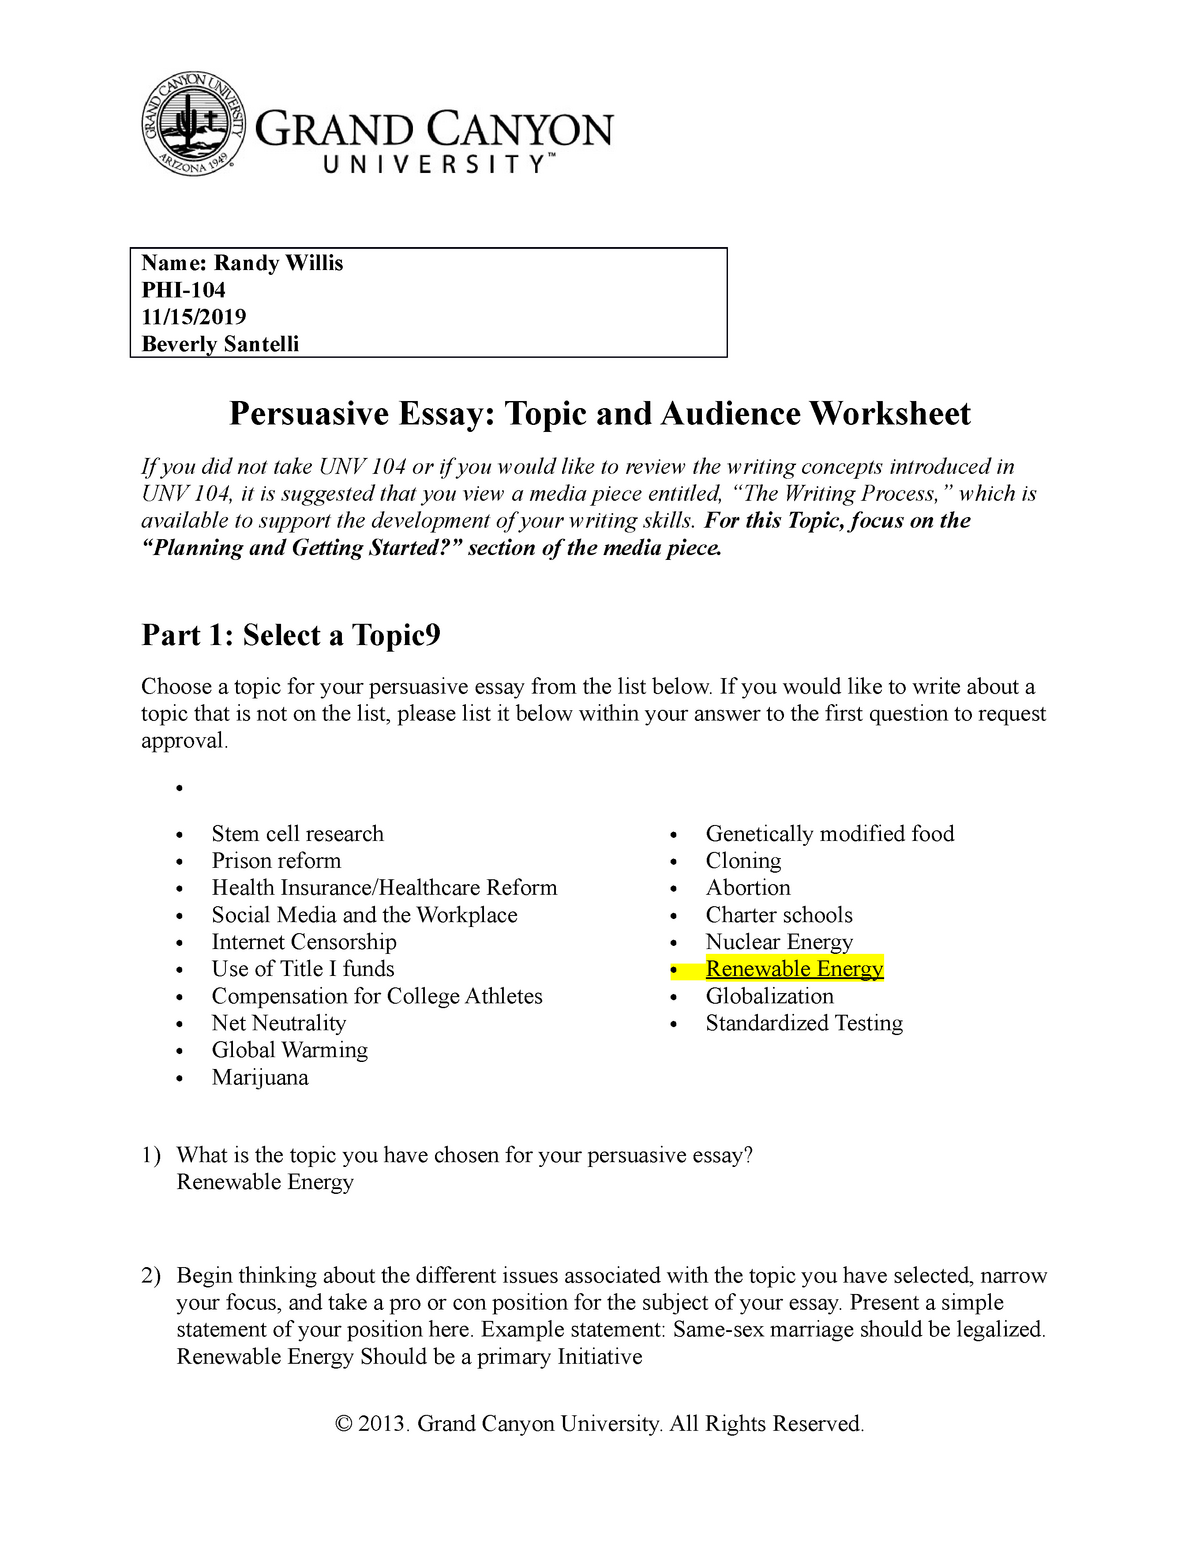 Persuasive Writing Prompts and Worksheets